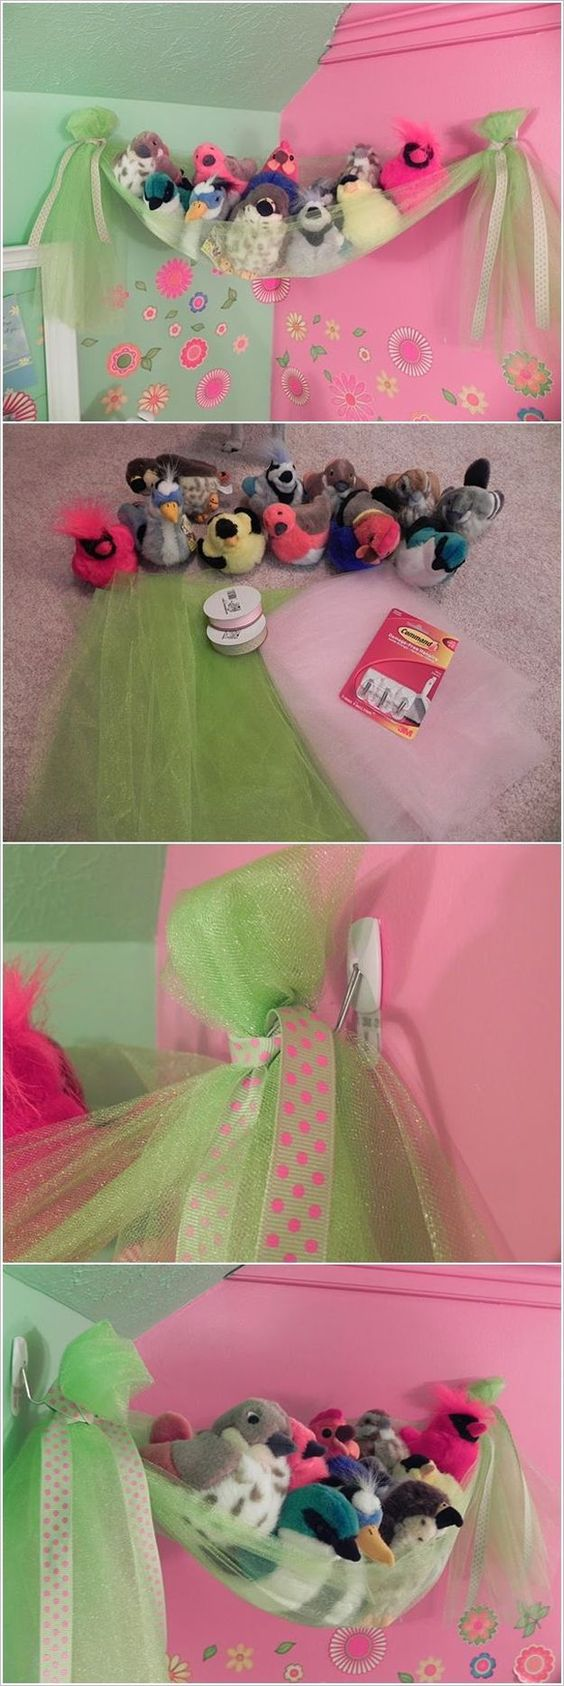 This Fancy Bird's Nest is a Super Easy Stuffed Toy Storage for Girls' Room.